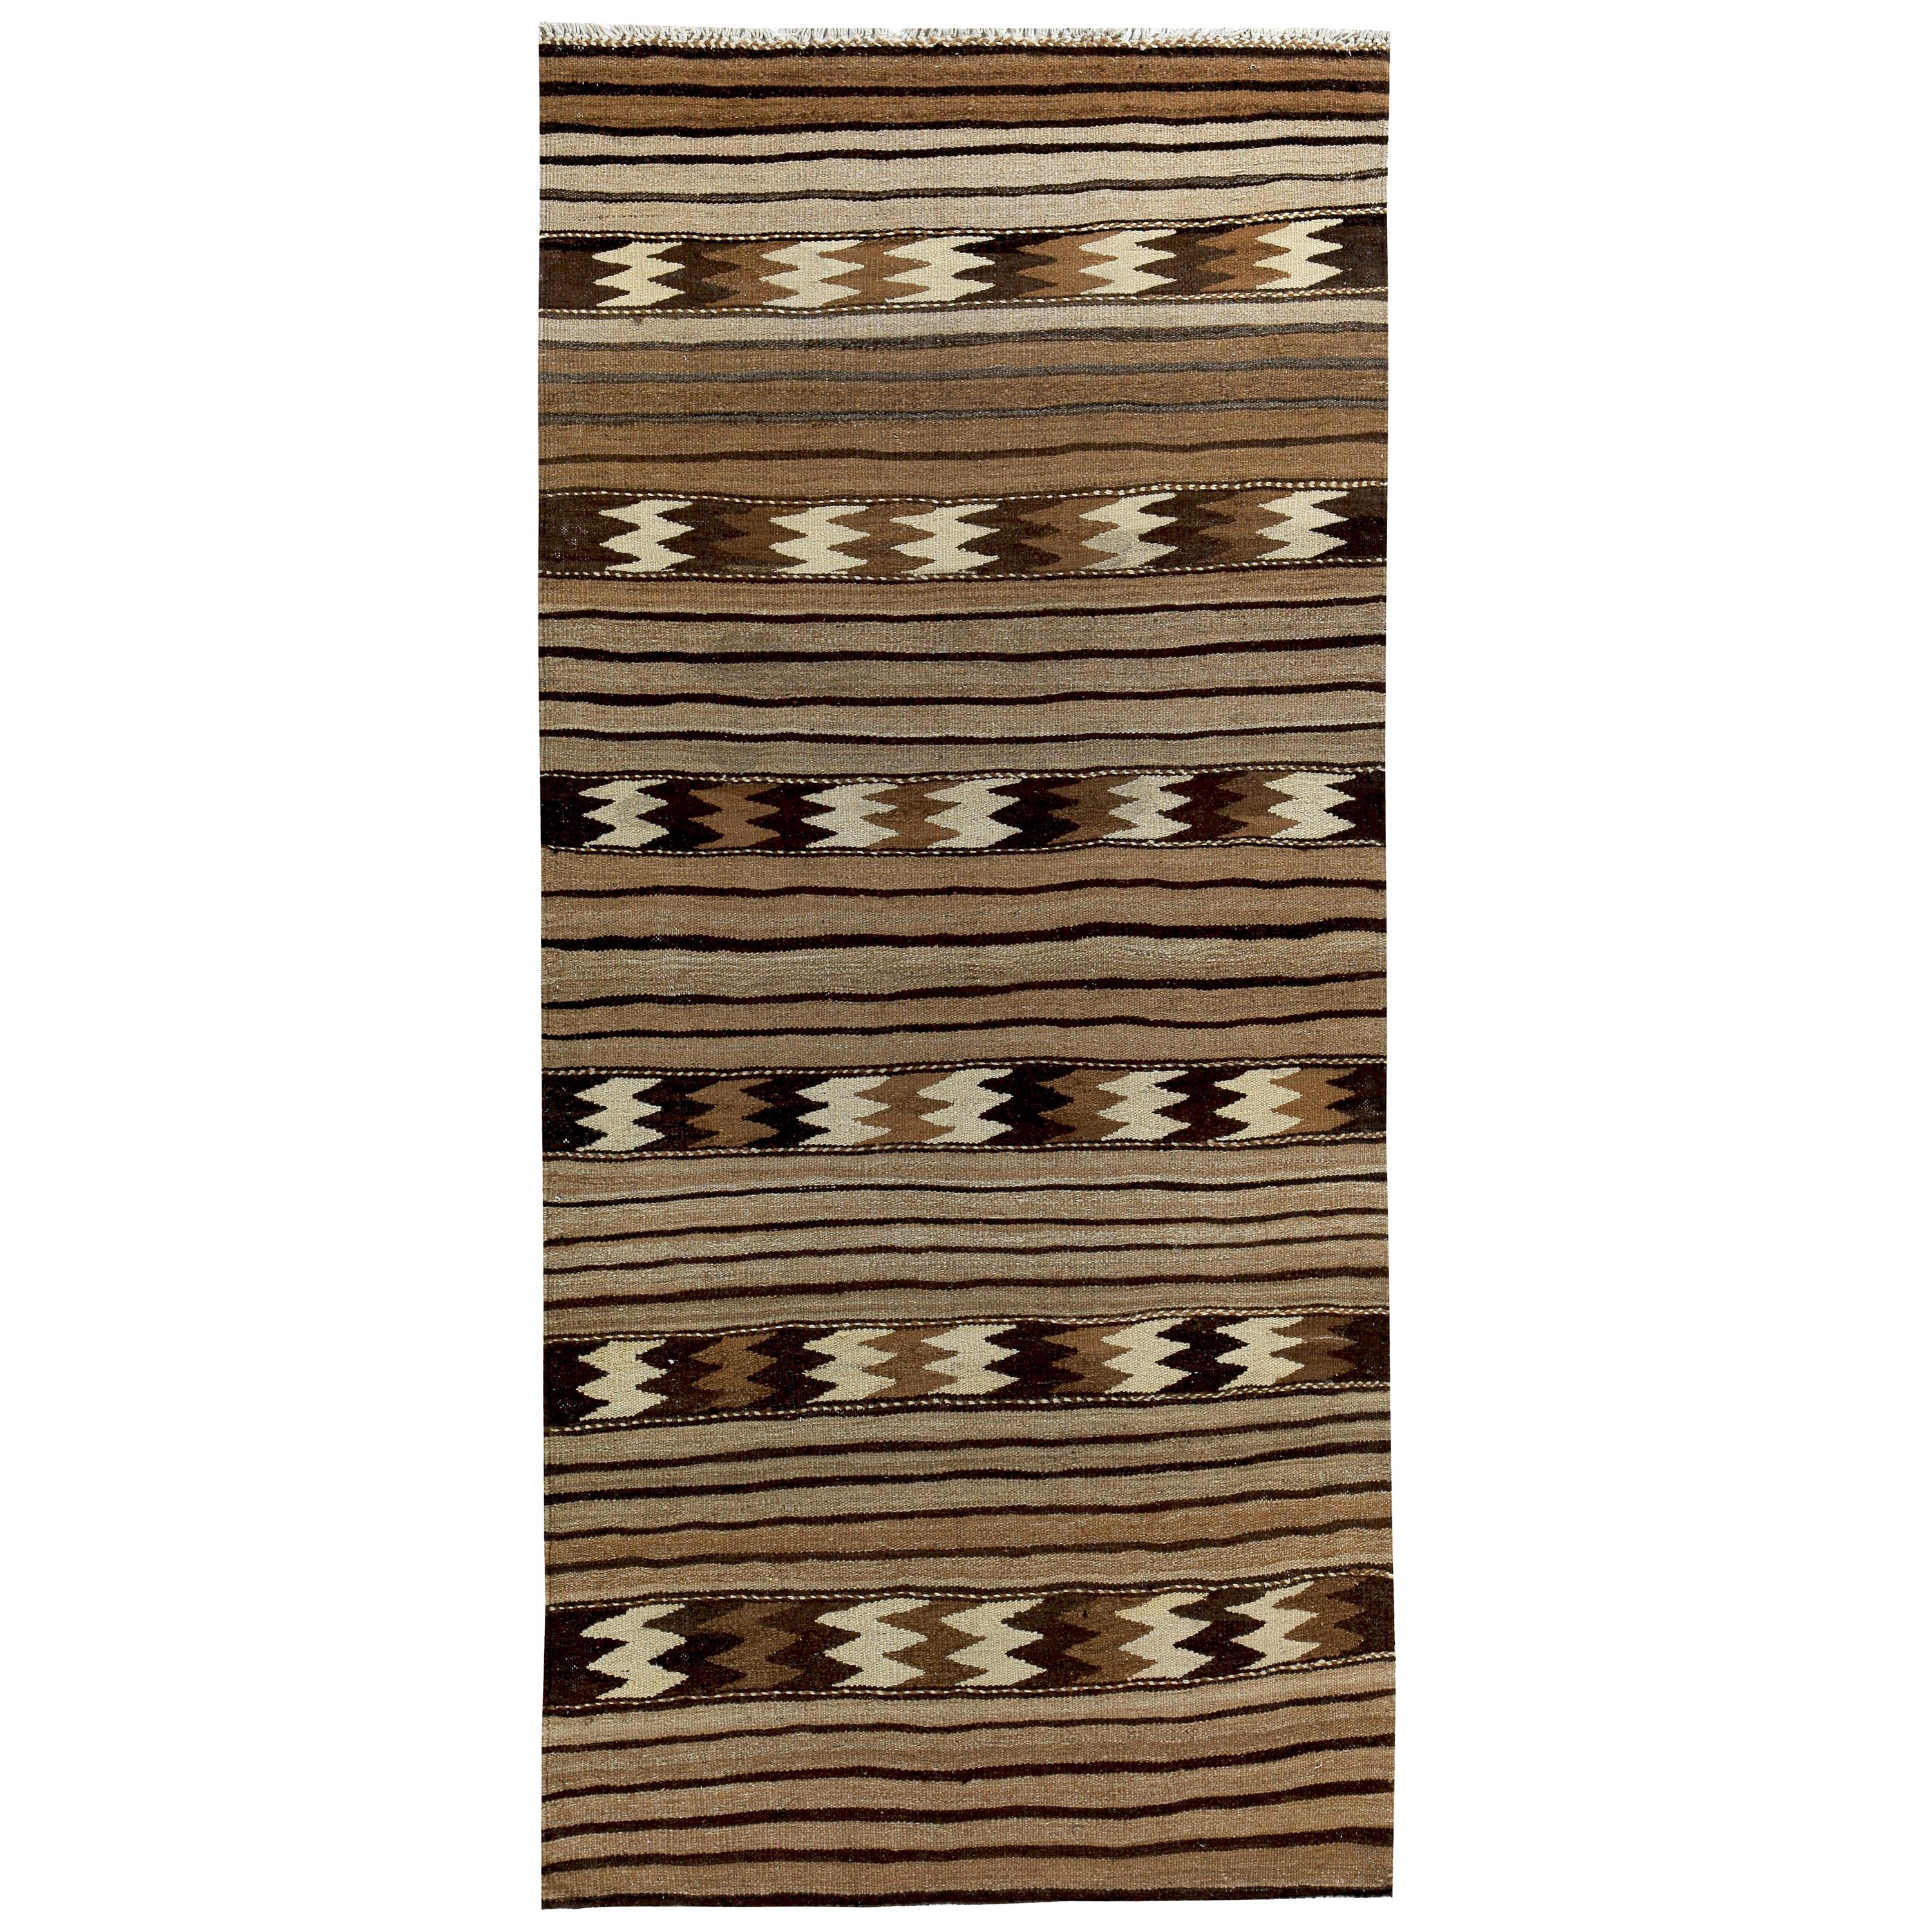 Turkish Kilim Rug with Ivory and Brown Tribal Stripes on Beige Field